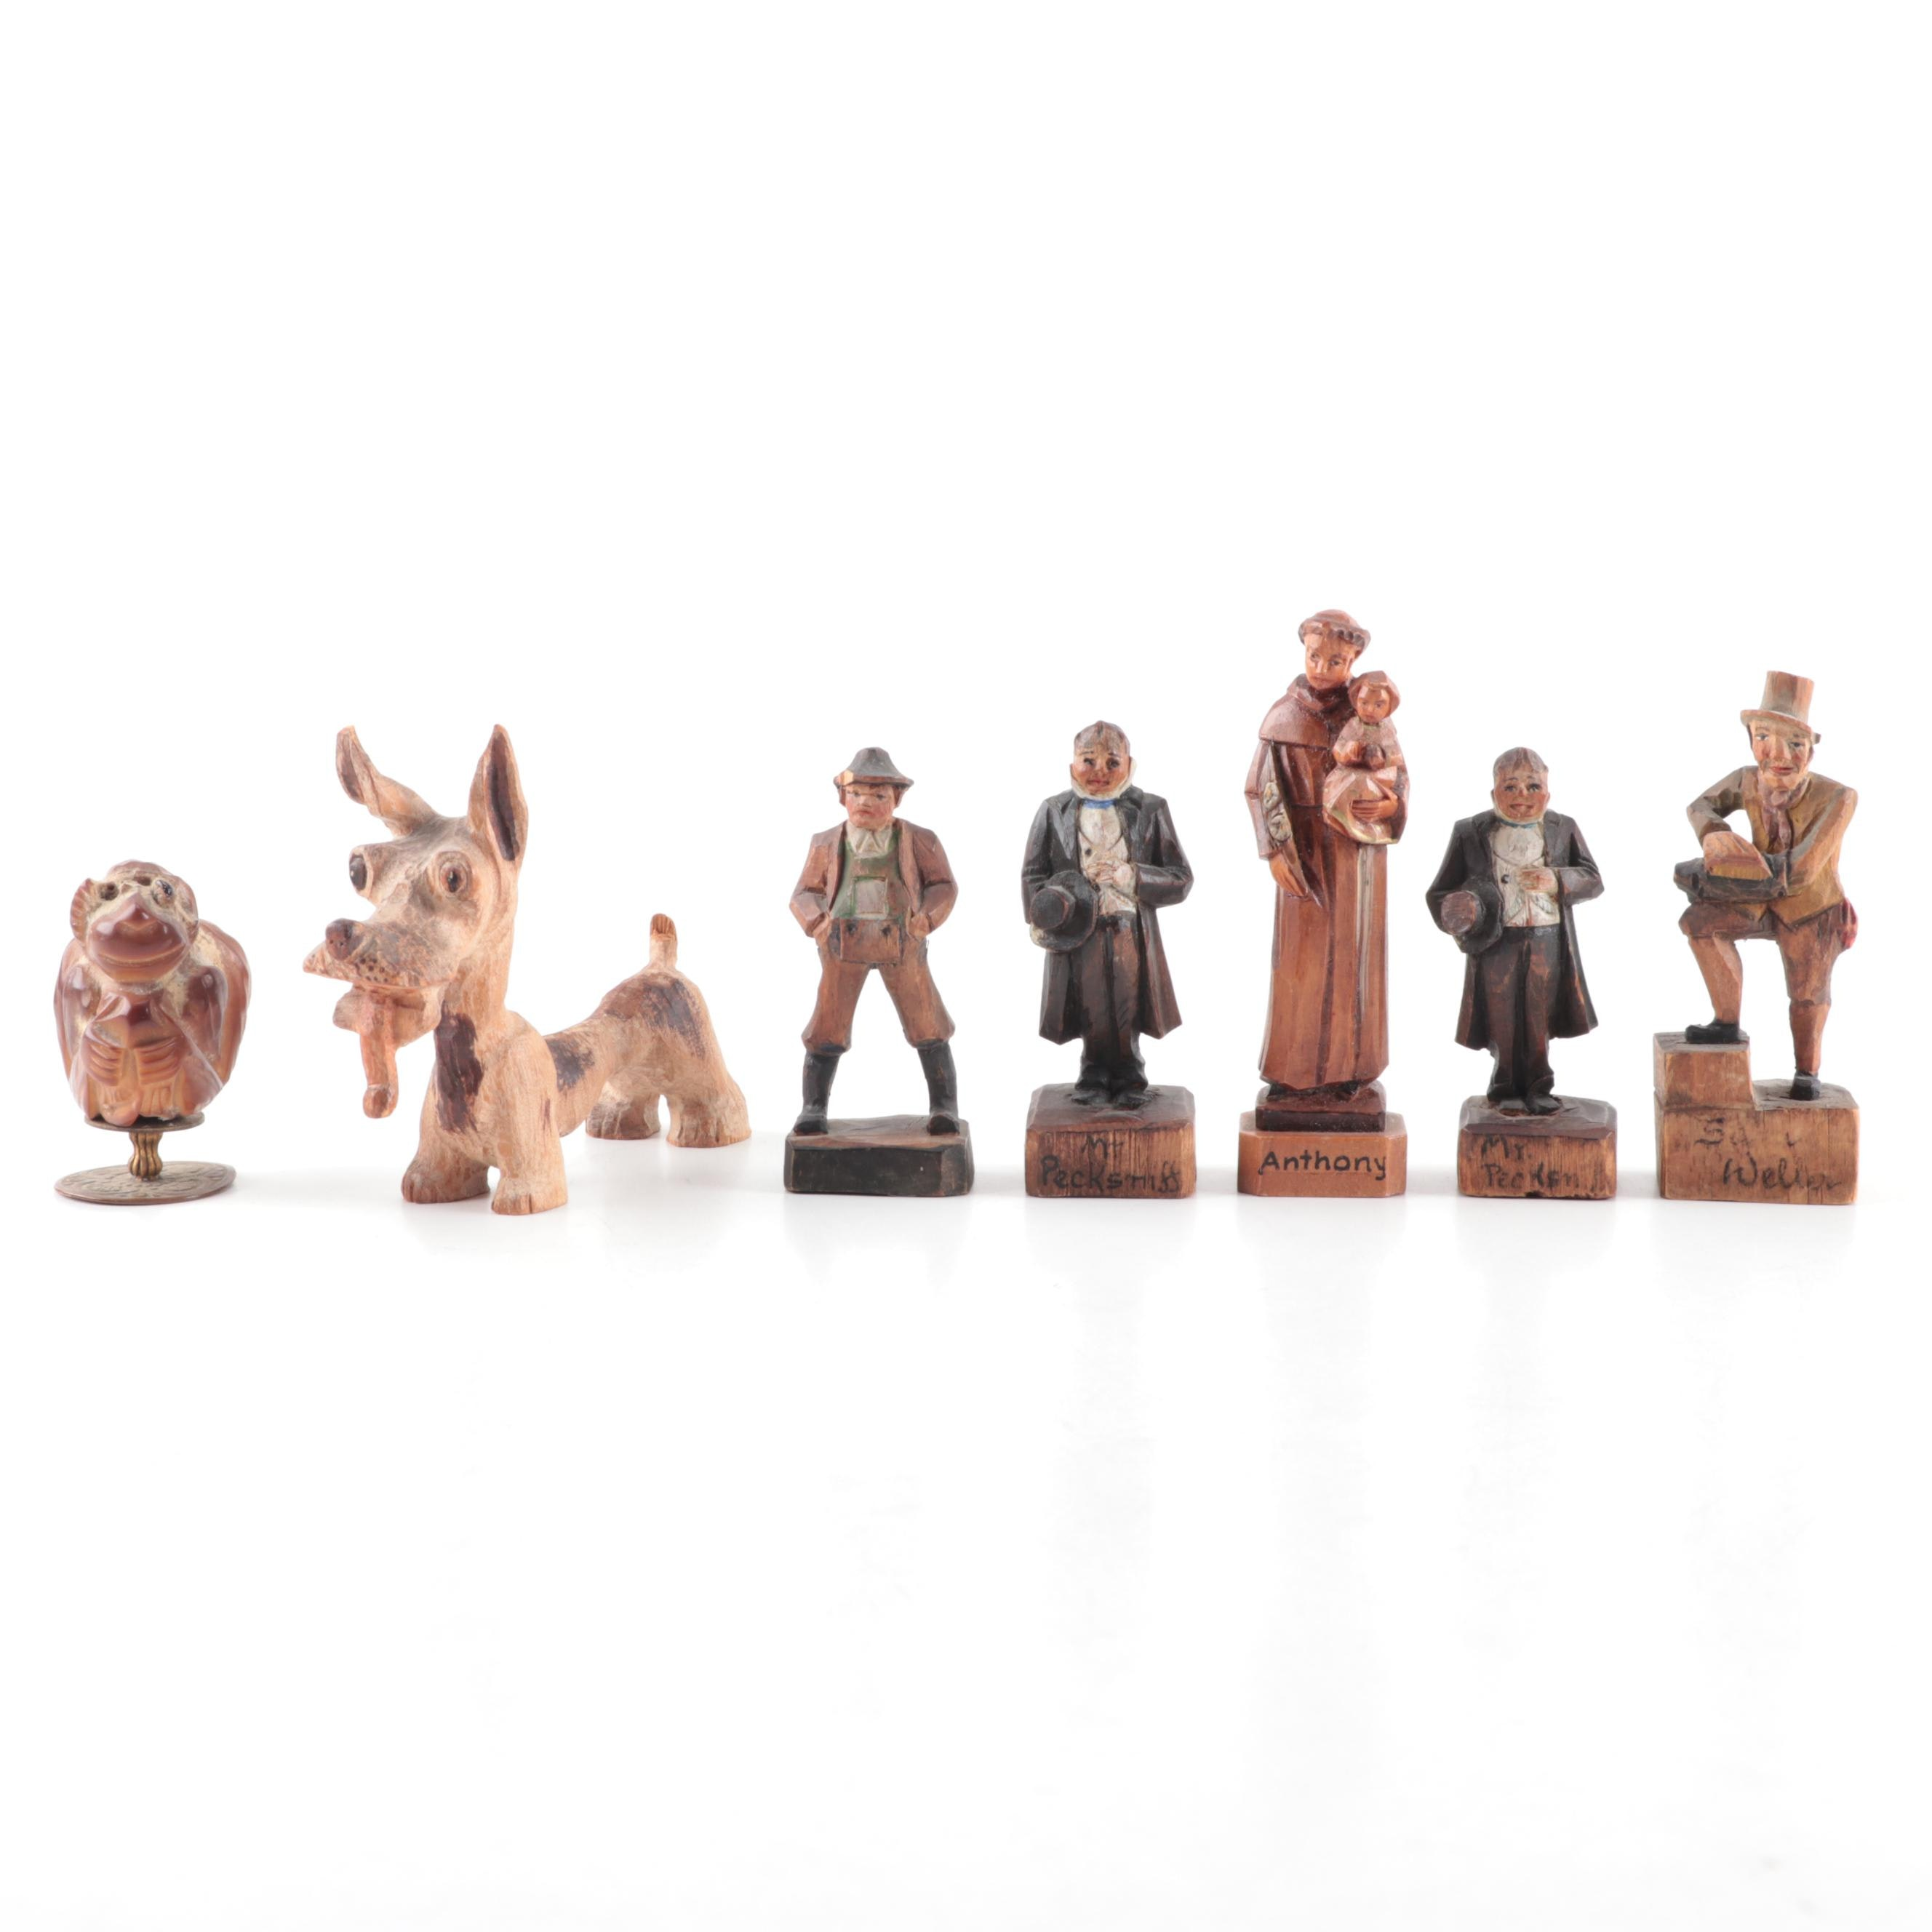 Charles Dickens Hand-Carved Wood Character Figurines and Others